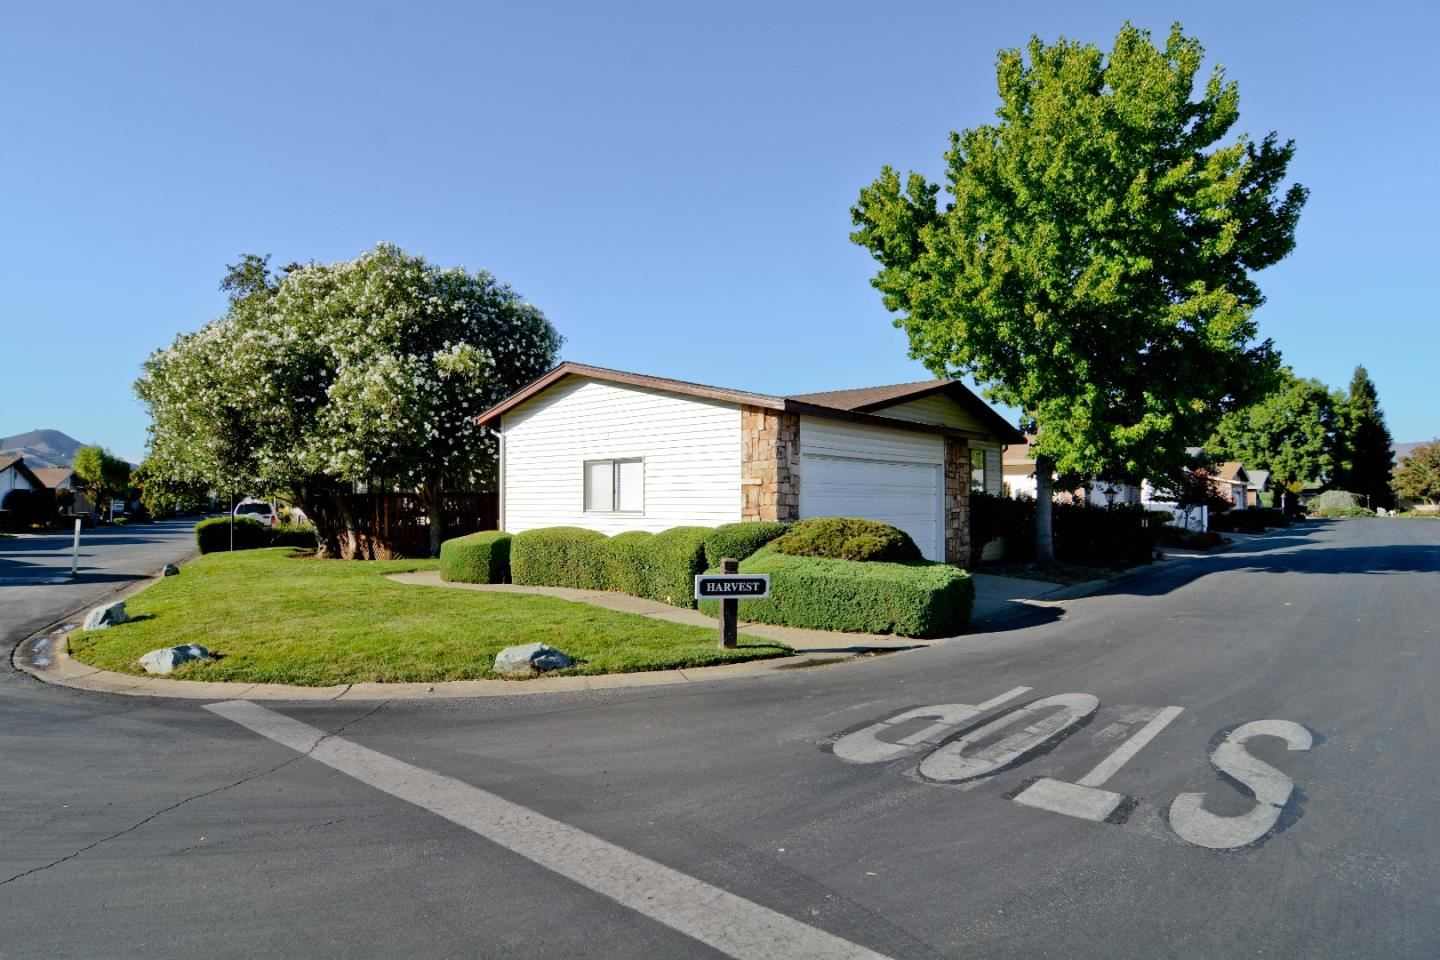 250 Harvest LN 250, Morgan Hill, CA 95037 - #: ML81815602